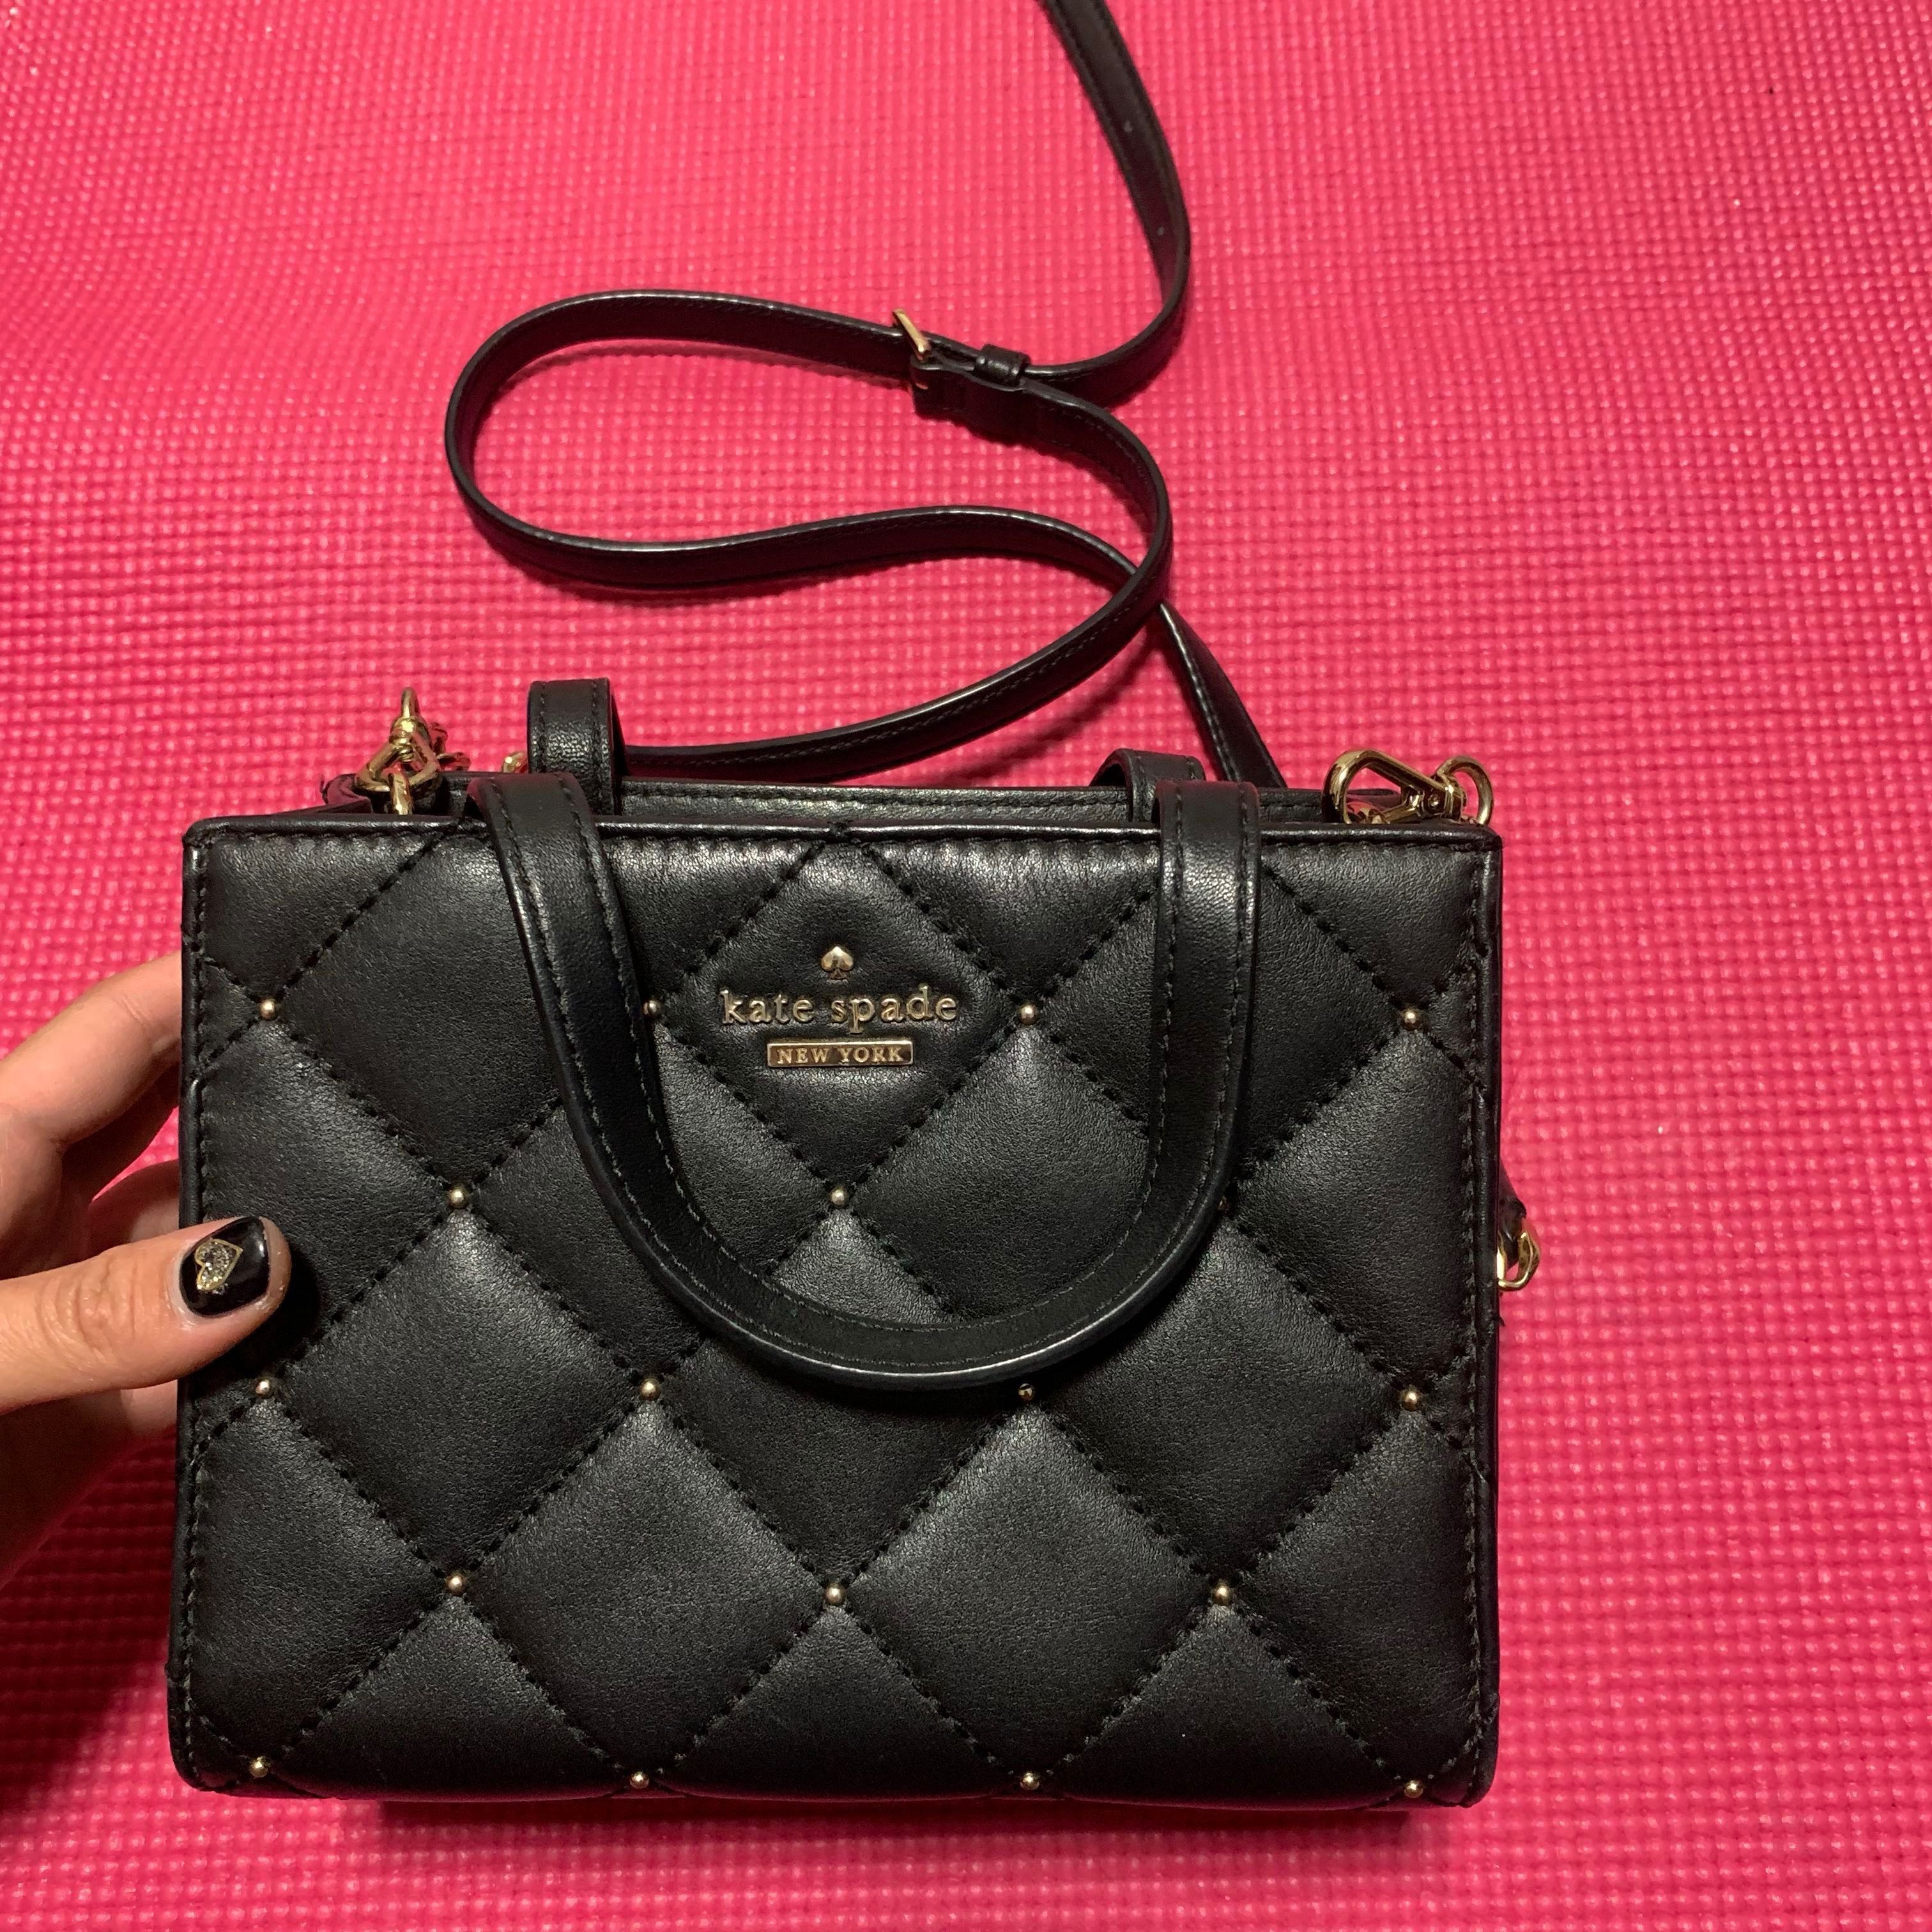 3c409e5c20d6 Kate Spade Sling Bag , Luxury, Bags & Wallets, Sling Bags on Carousell